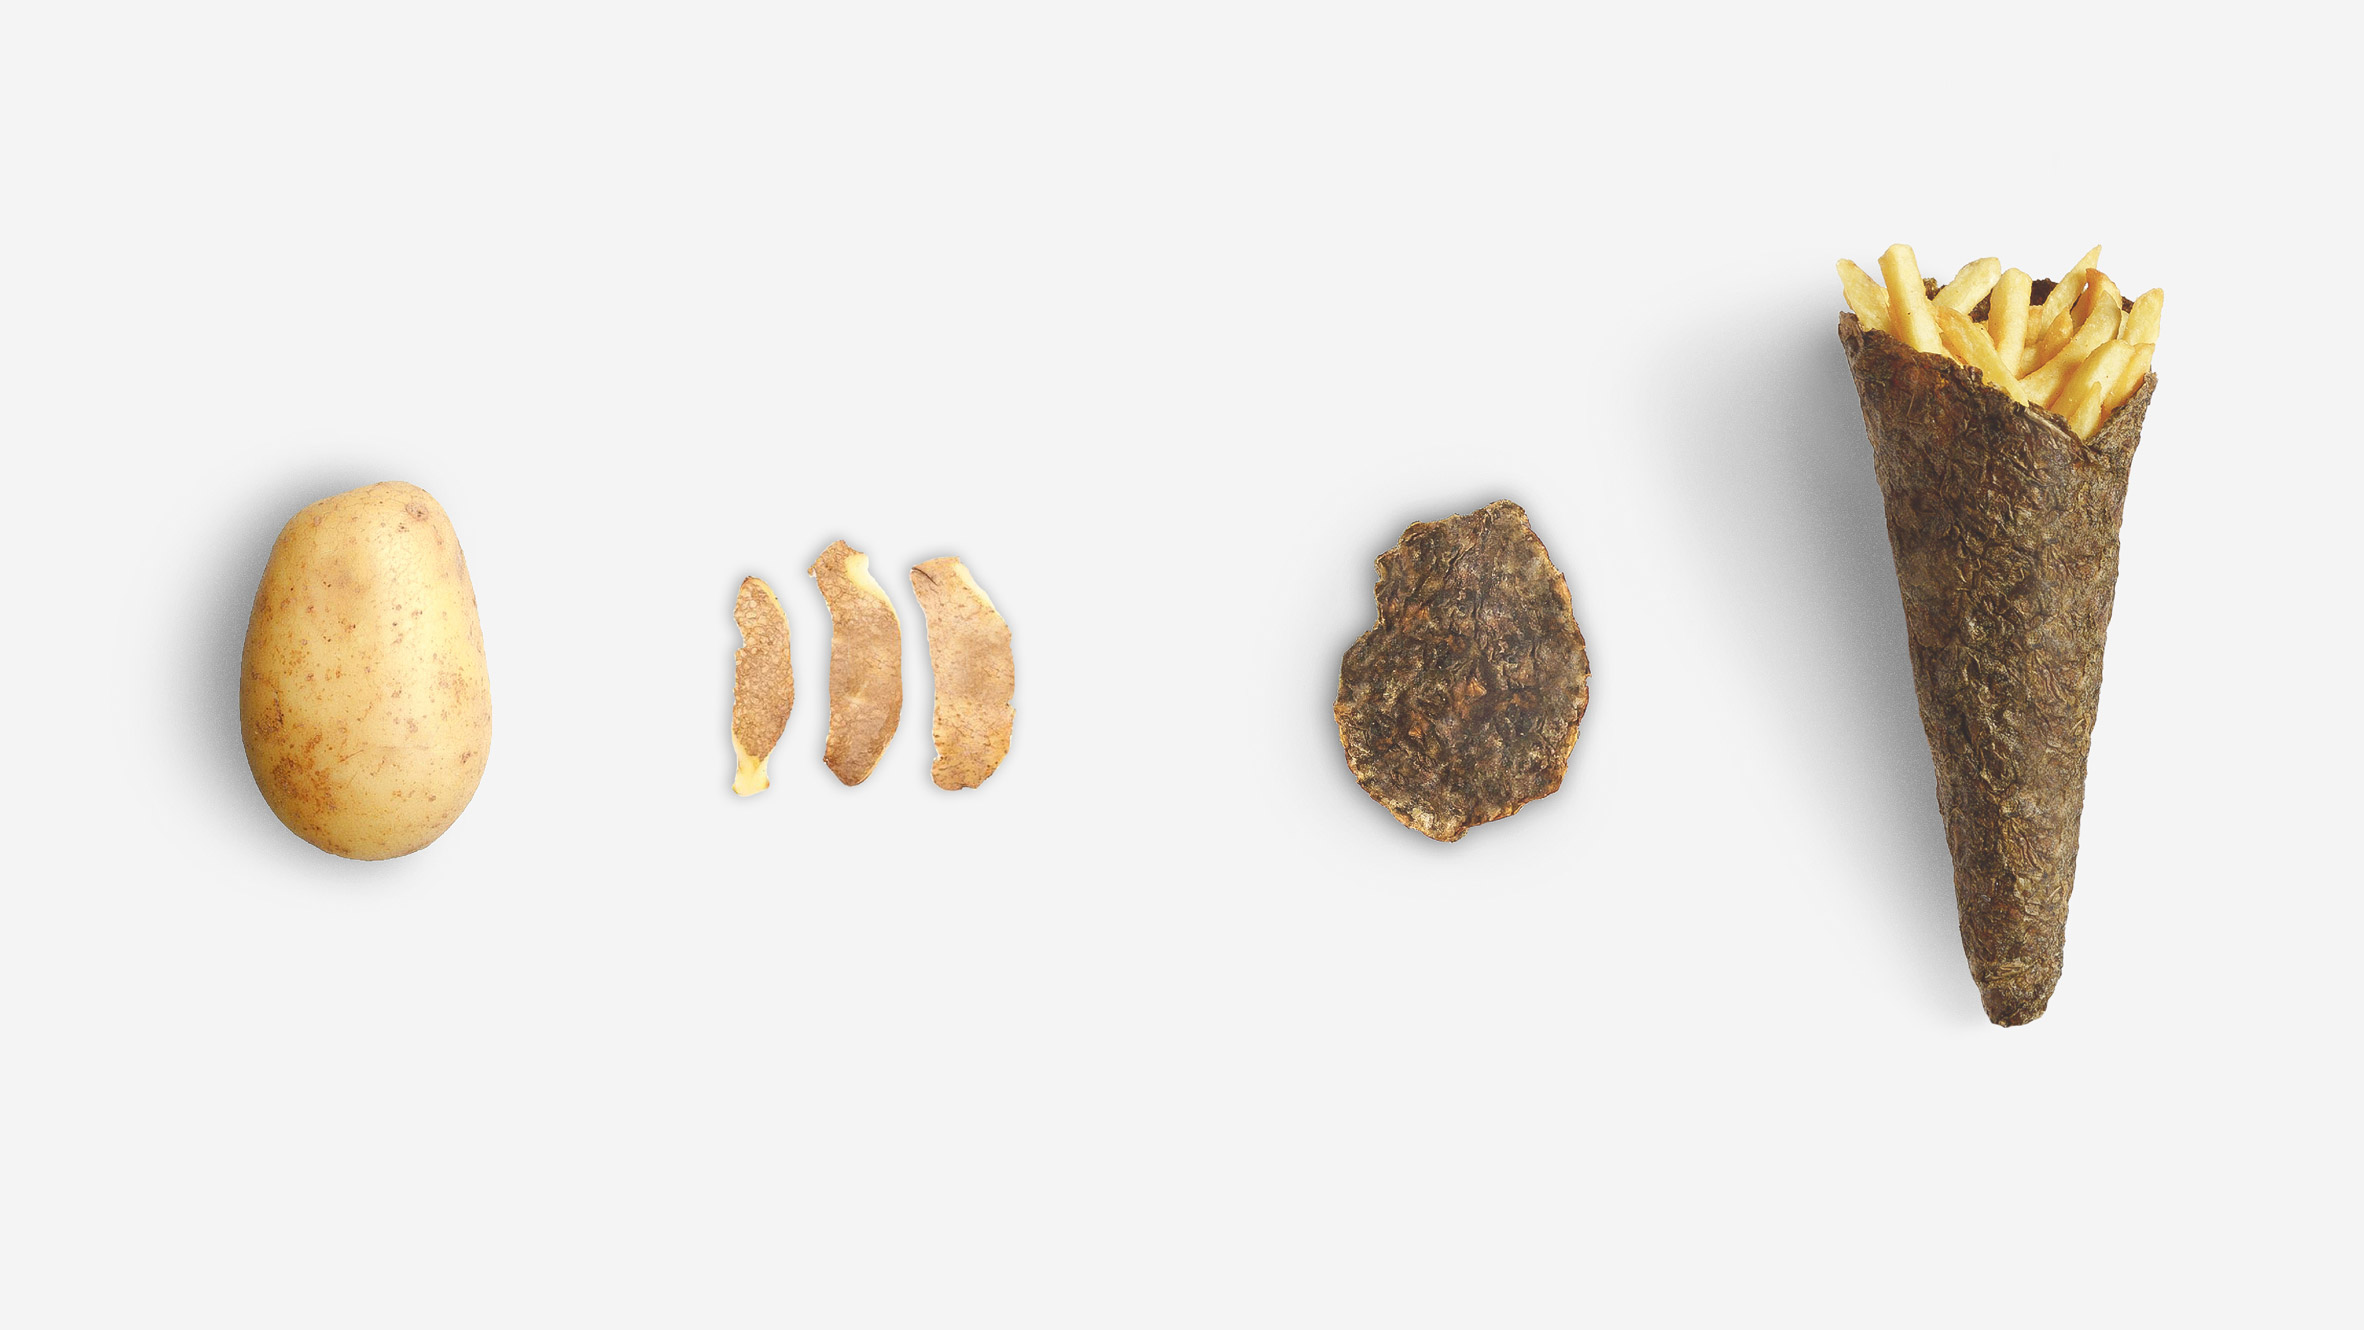 Peel Saver is an ecological packaging for fries made from potato skins